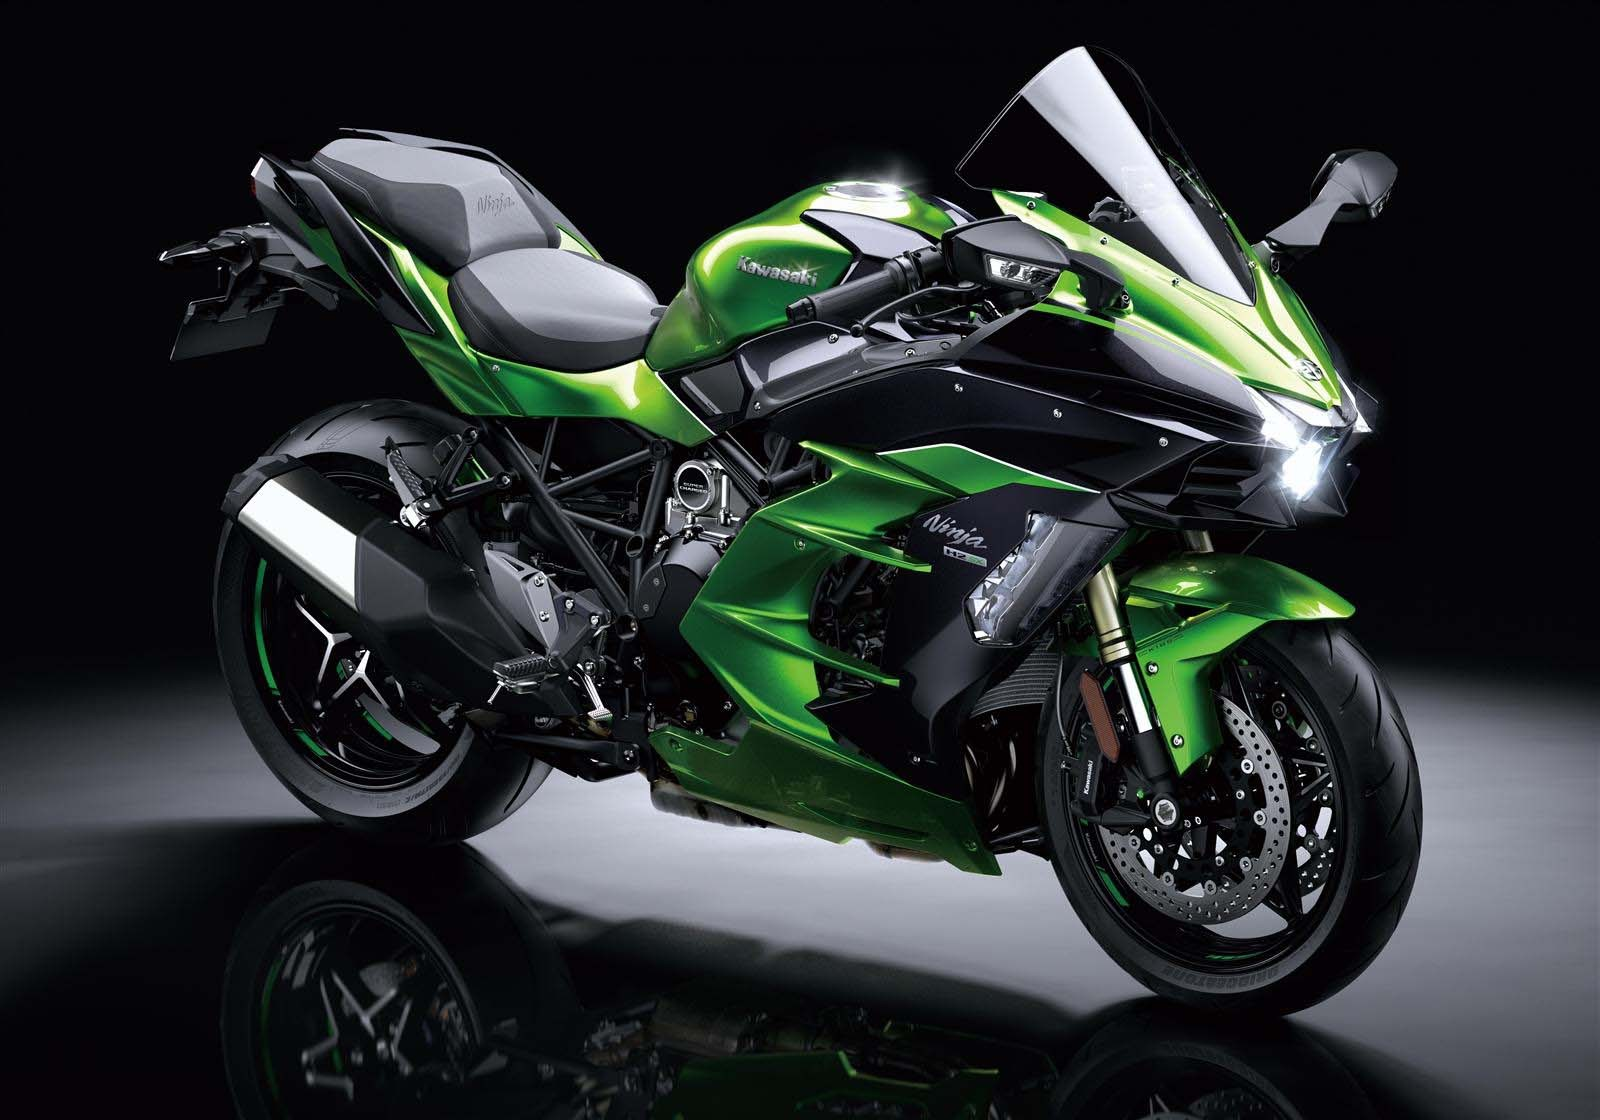 After The Mighty Ninja H2 And H2r Kawasaki Brings In The 207 Hp H2